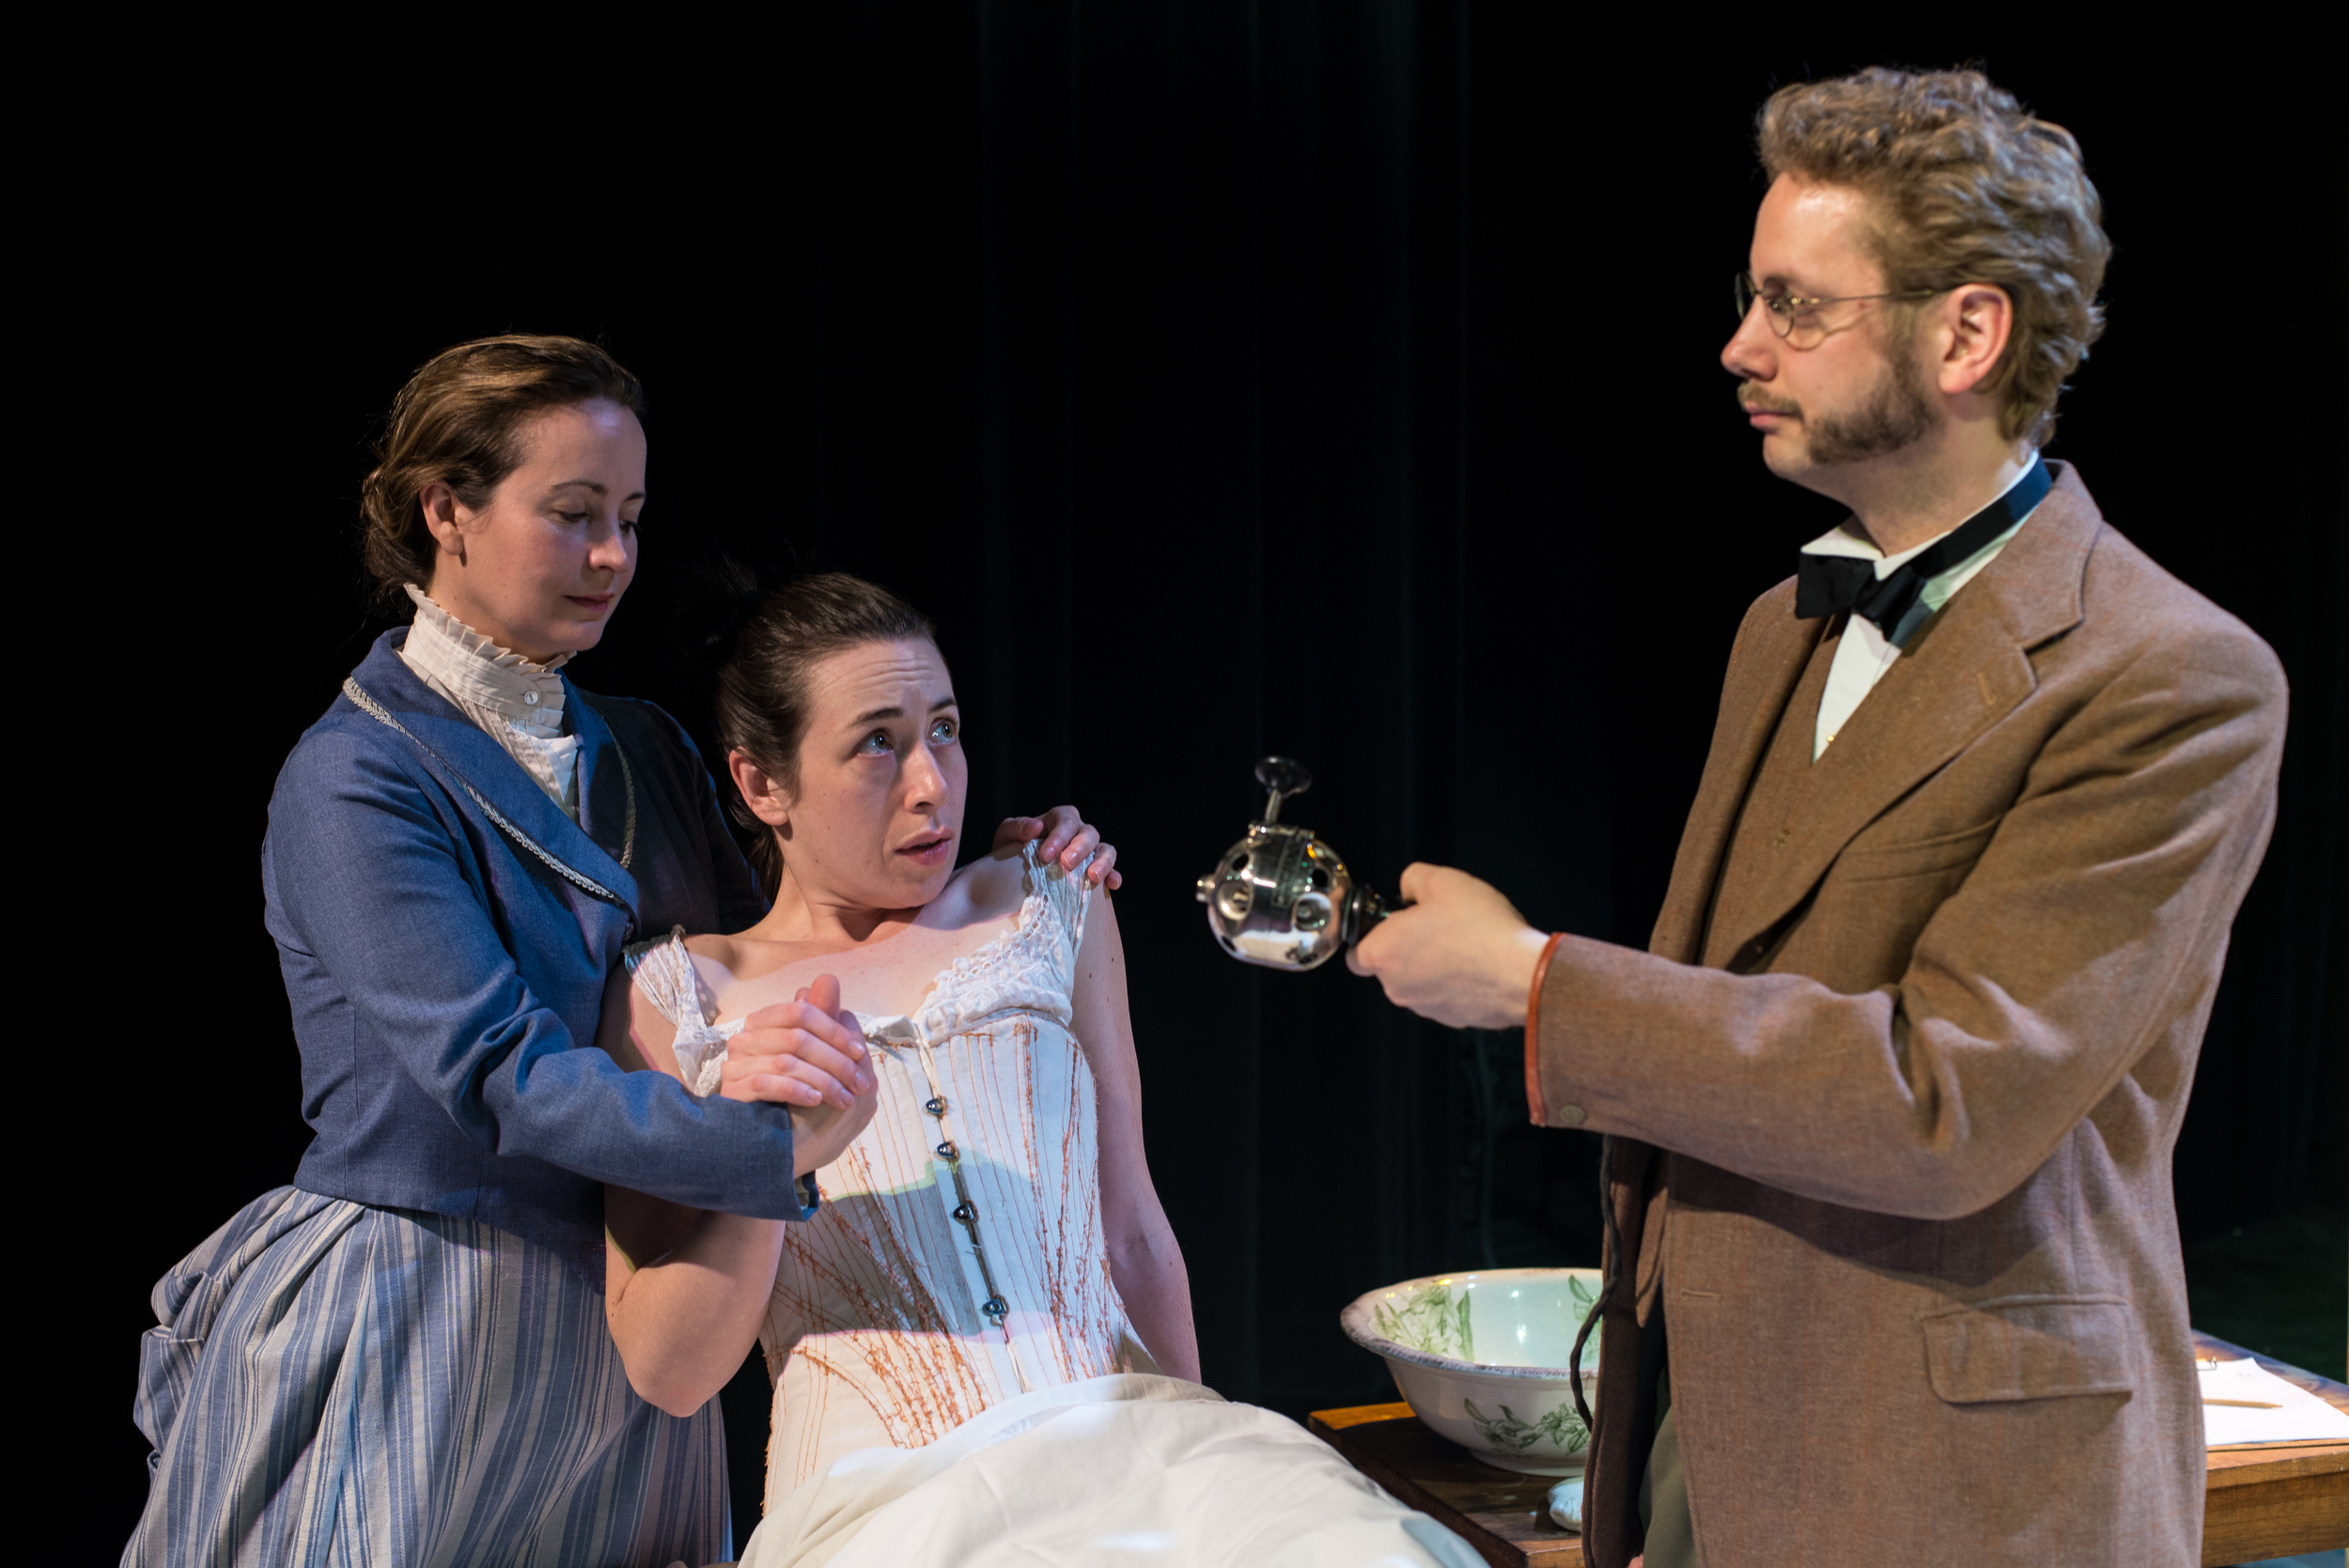 Annie (Michelle LeBlanc), Mrs. Daldry (Sarah Finn), & Dr. Givings (David Whiteley) Photography by A. Alexander